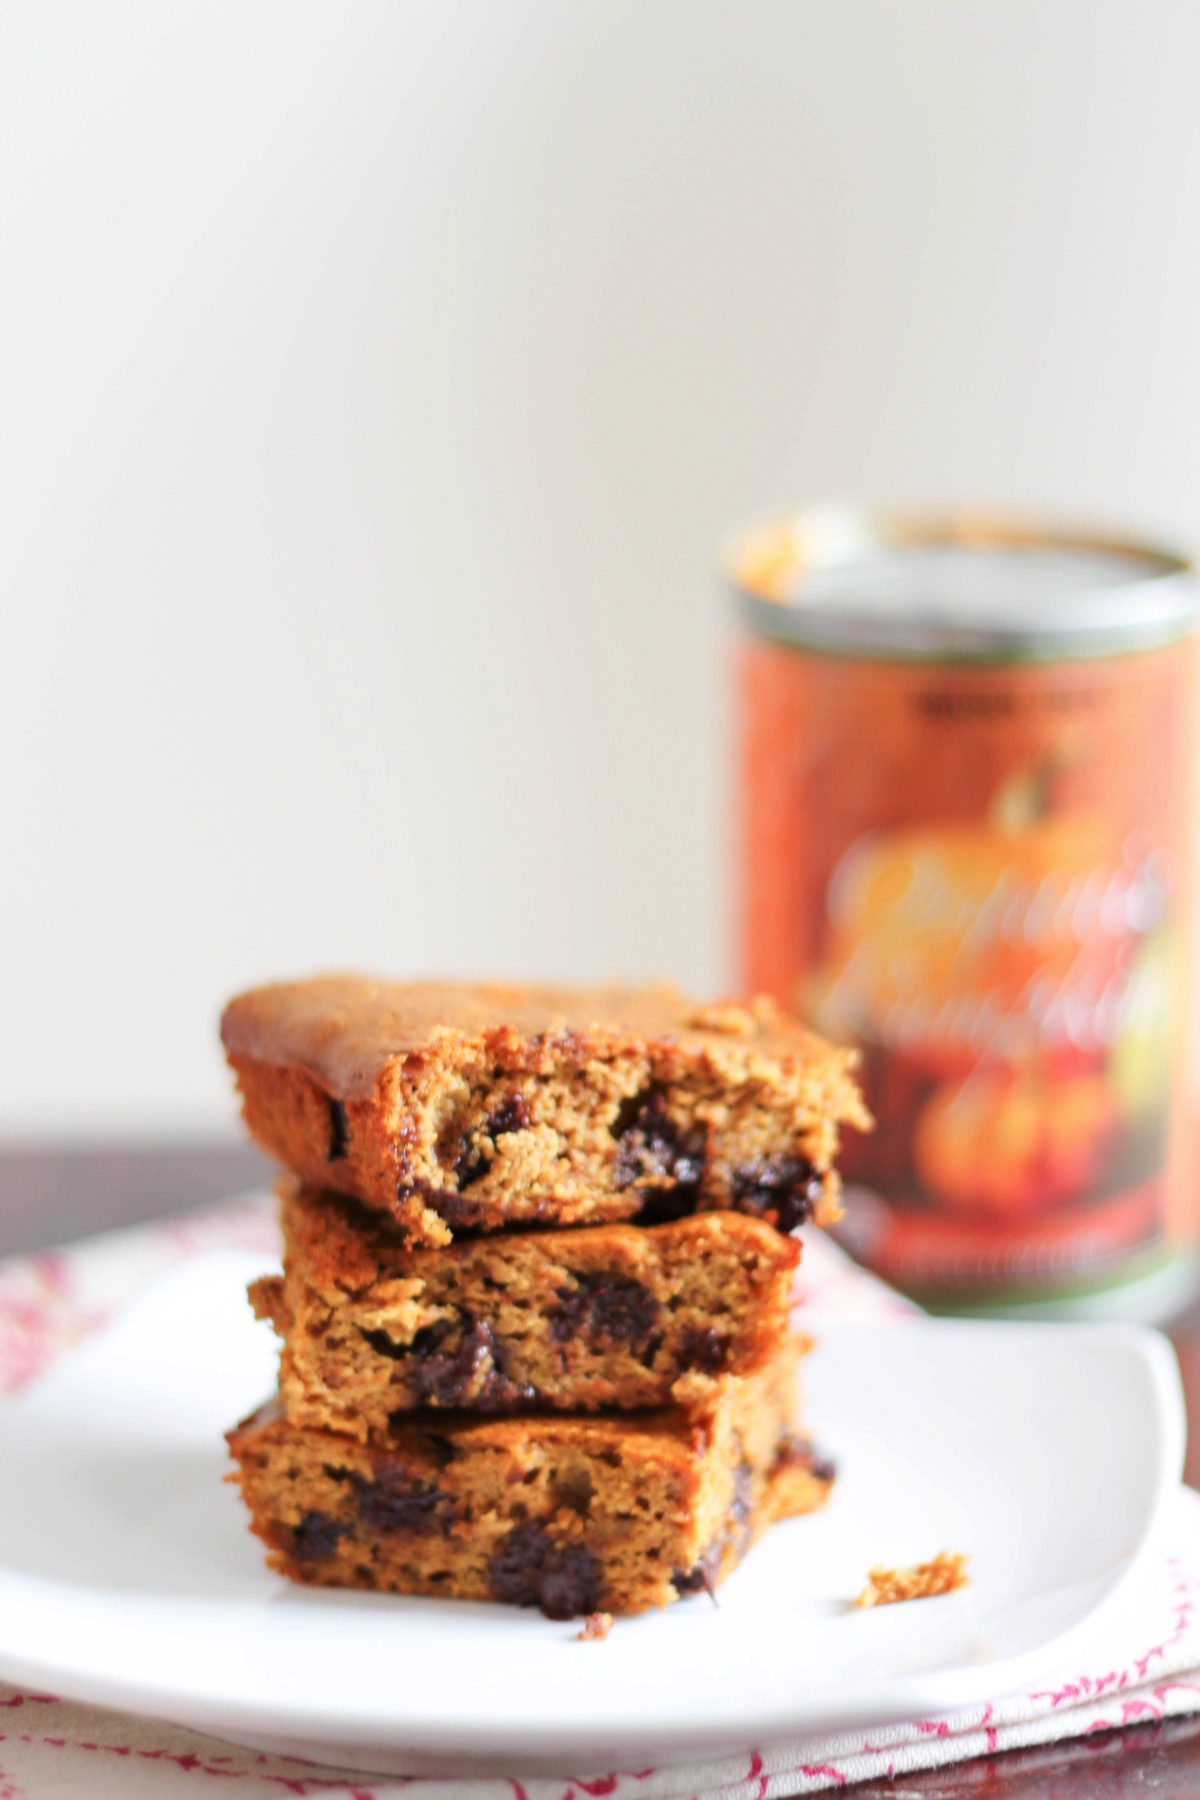 Flourless pumpkin chocolate chip bars! a holiday treat that's secretly packed with nutrition and under 200 calories per serving